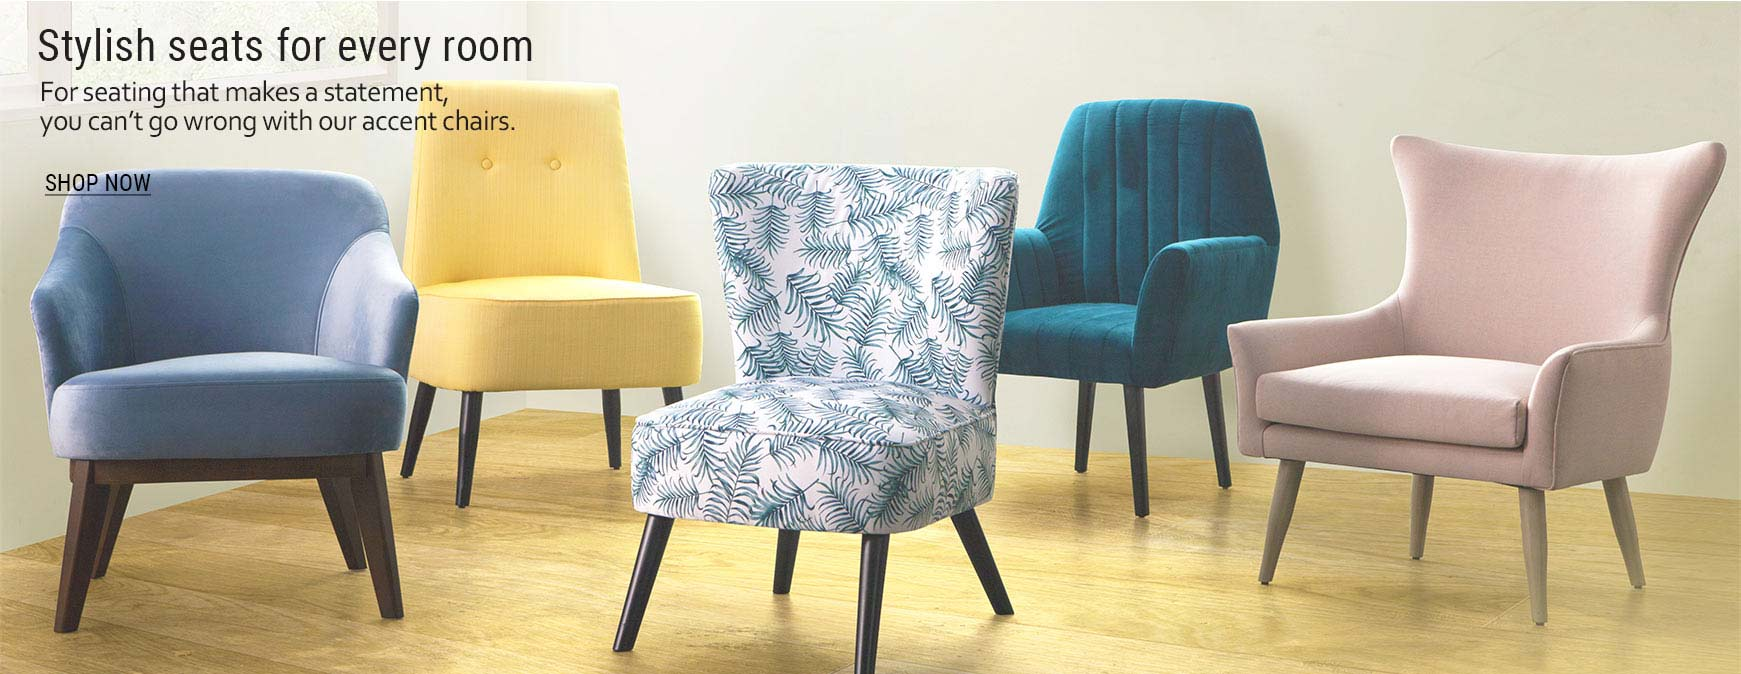 22-Accent chairs of different styles and color